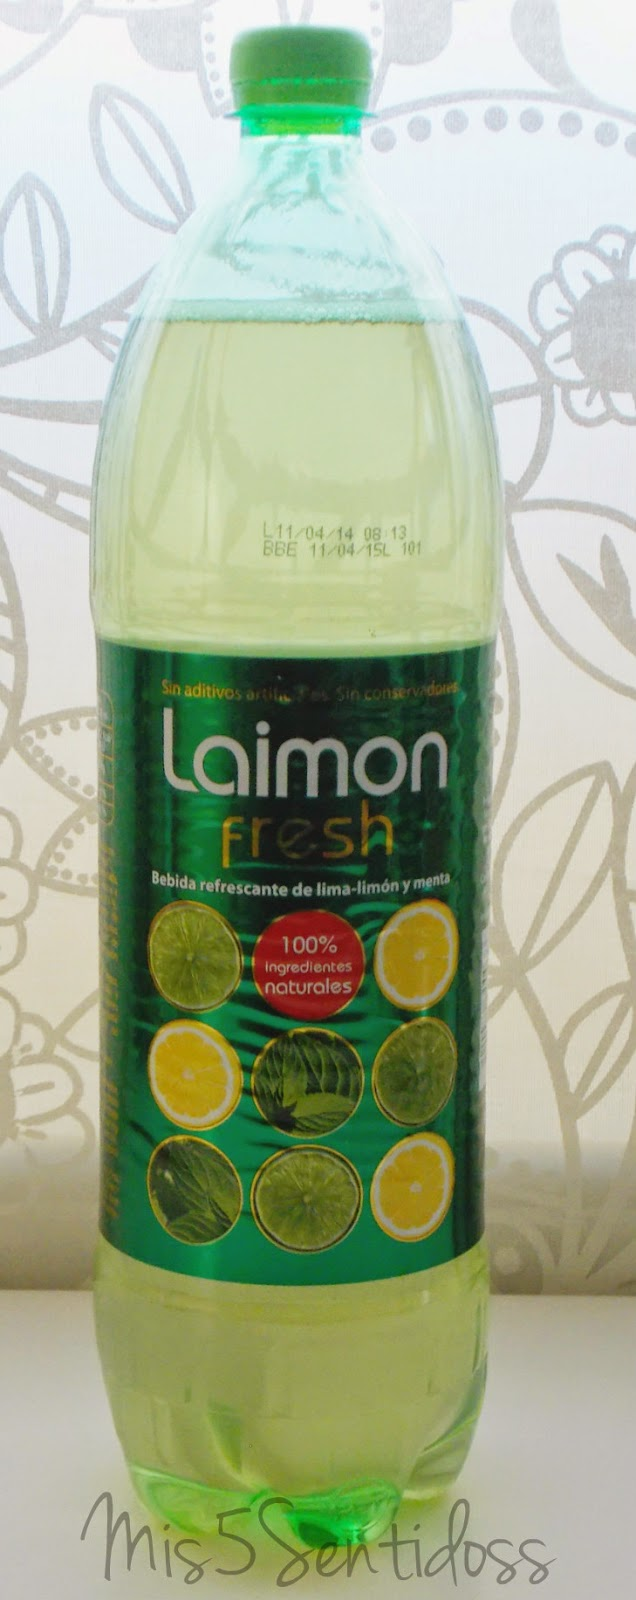 Degustabox Laimon Fresh